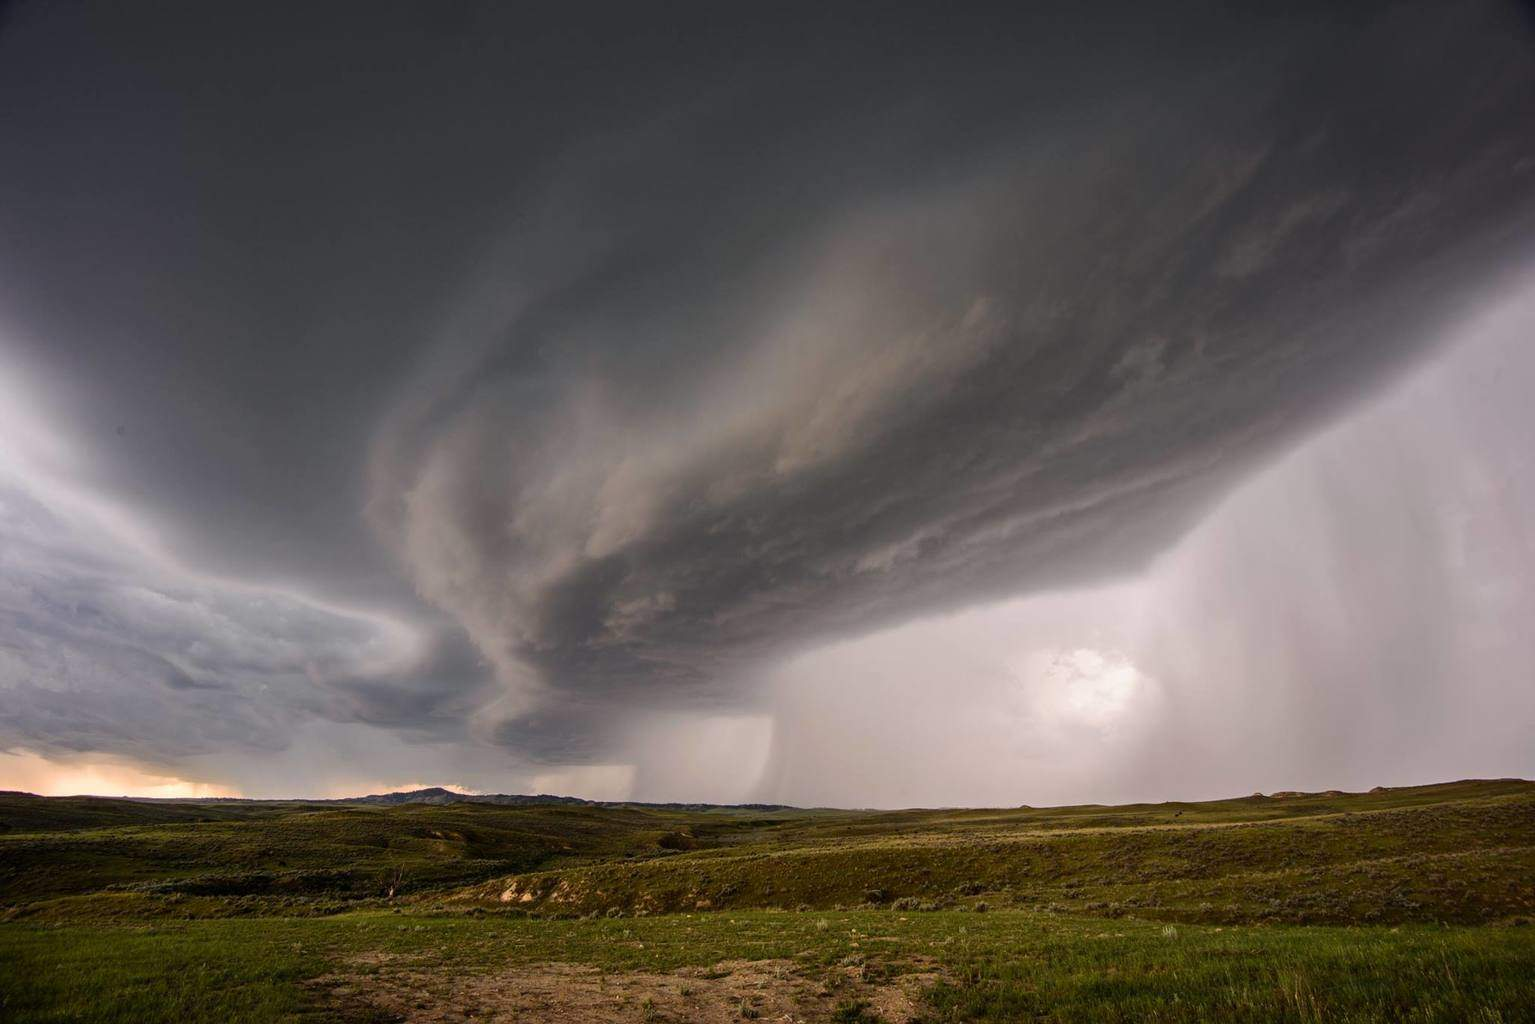 Two mesocyclones embedded in a severe squall line in SE MT, June 2015